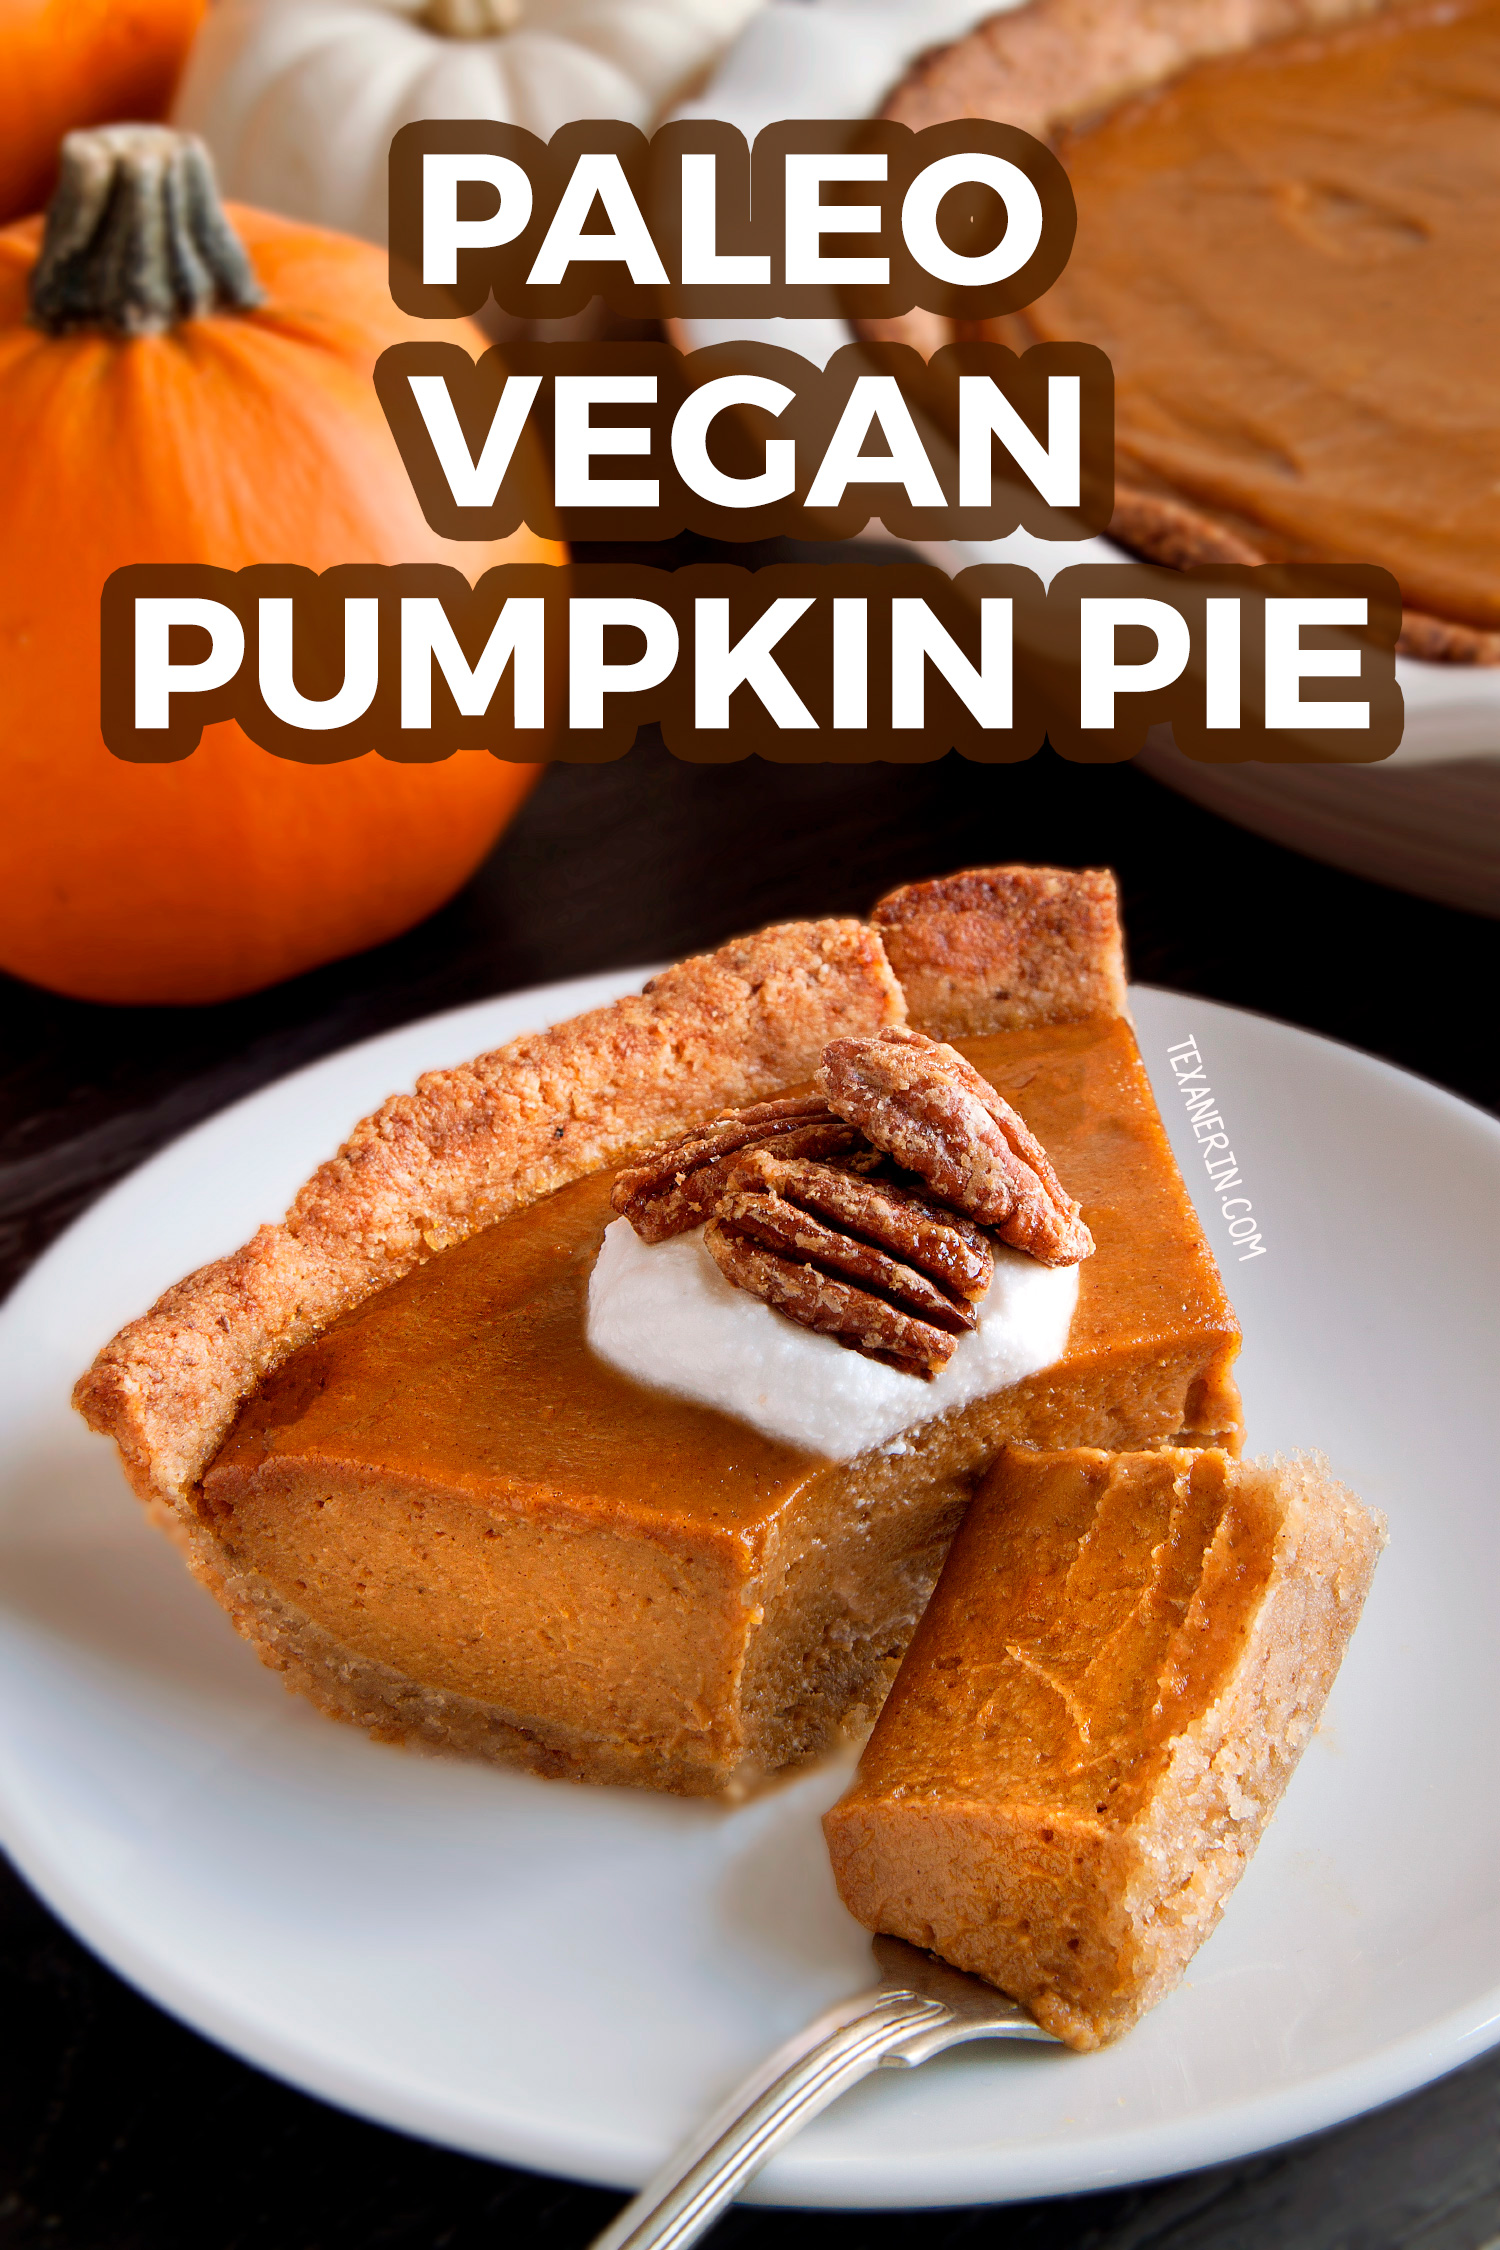 This amazing Paleo Vegan Pumpkin Pie has a richer and creamier pumpkin filling than your traditional pumpkin pie! A great grain-free, dairy-free and gluten-free dessert for Thanksgiving. With a how-to recipe video.